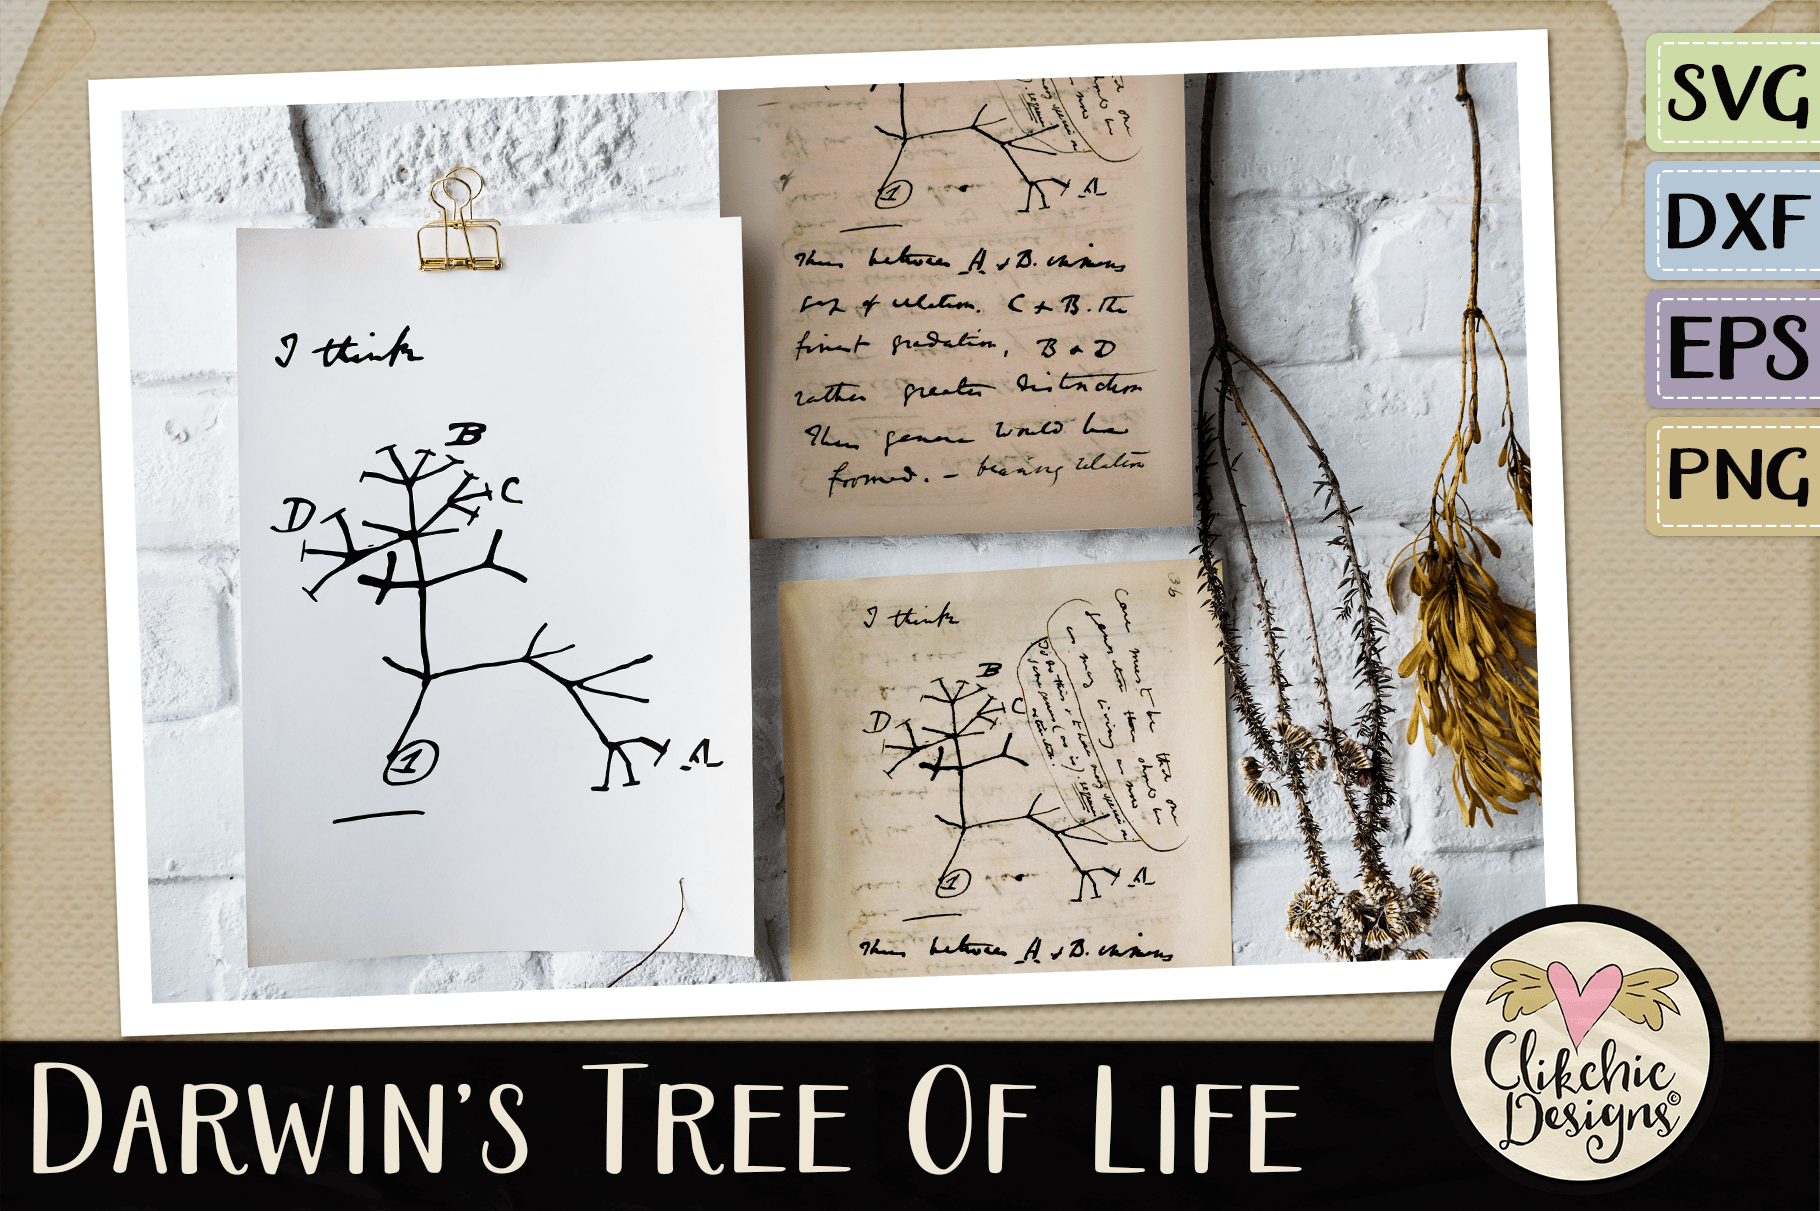 Darwin's Evolutionary Tree of Life SVG Cutting File example image 3